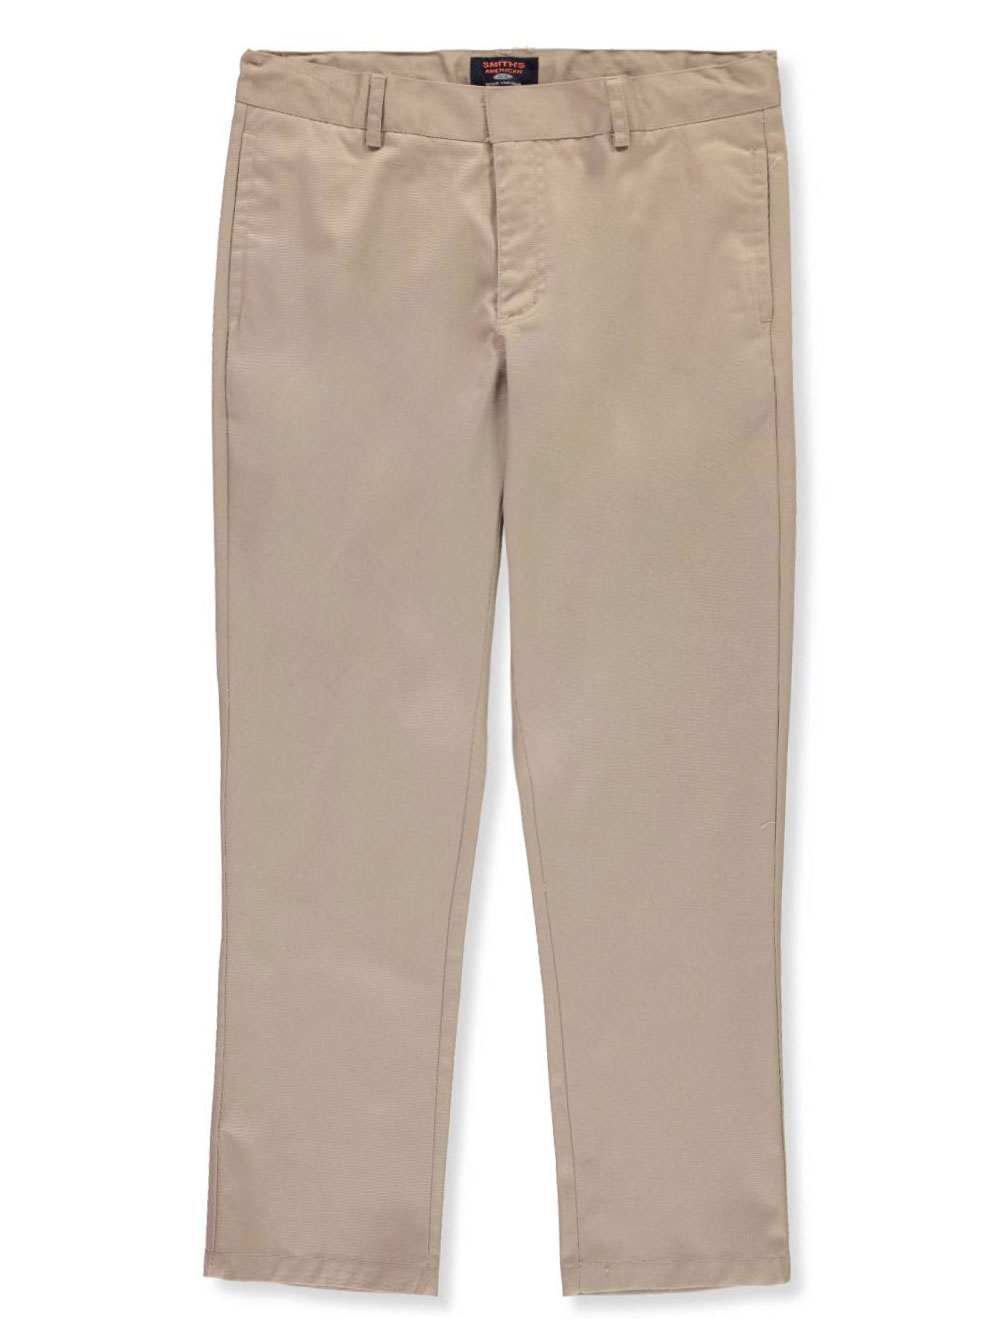 Smiths American Little Boys Flat Front Twill Pant